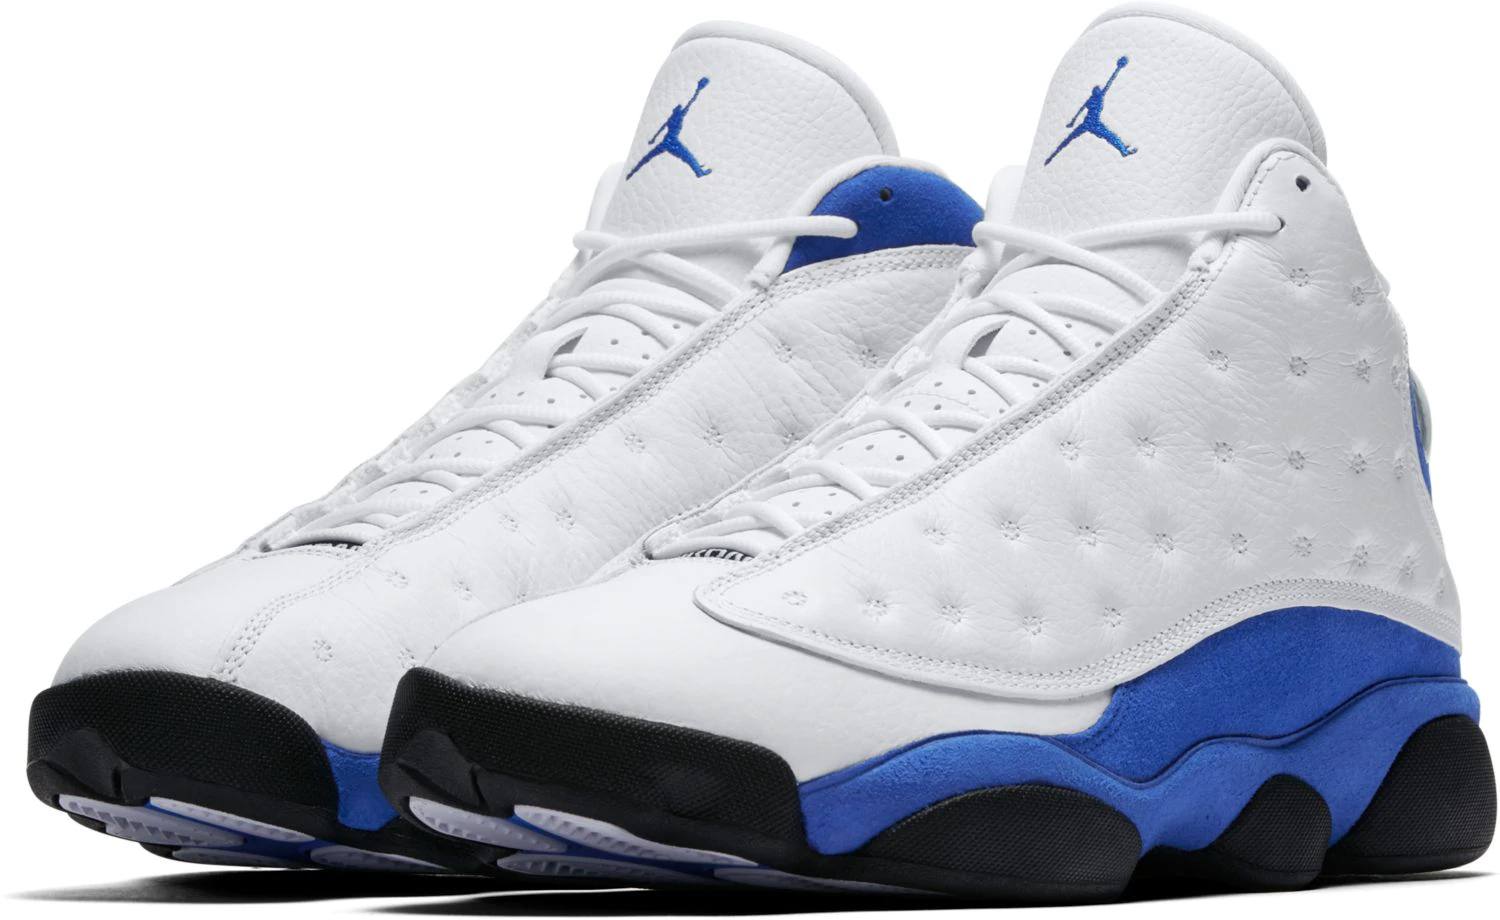 Men's Running Weapon Super Quality Air Jordan 13 Shoes 0115